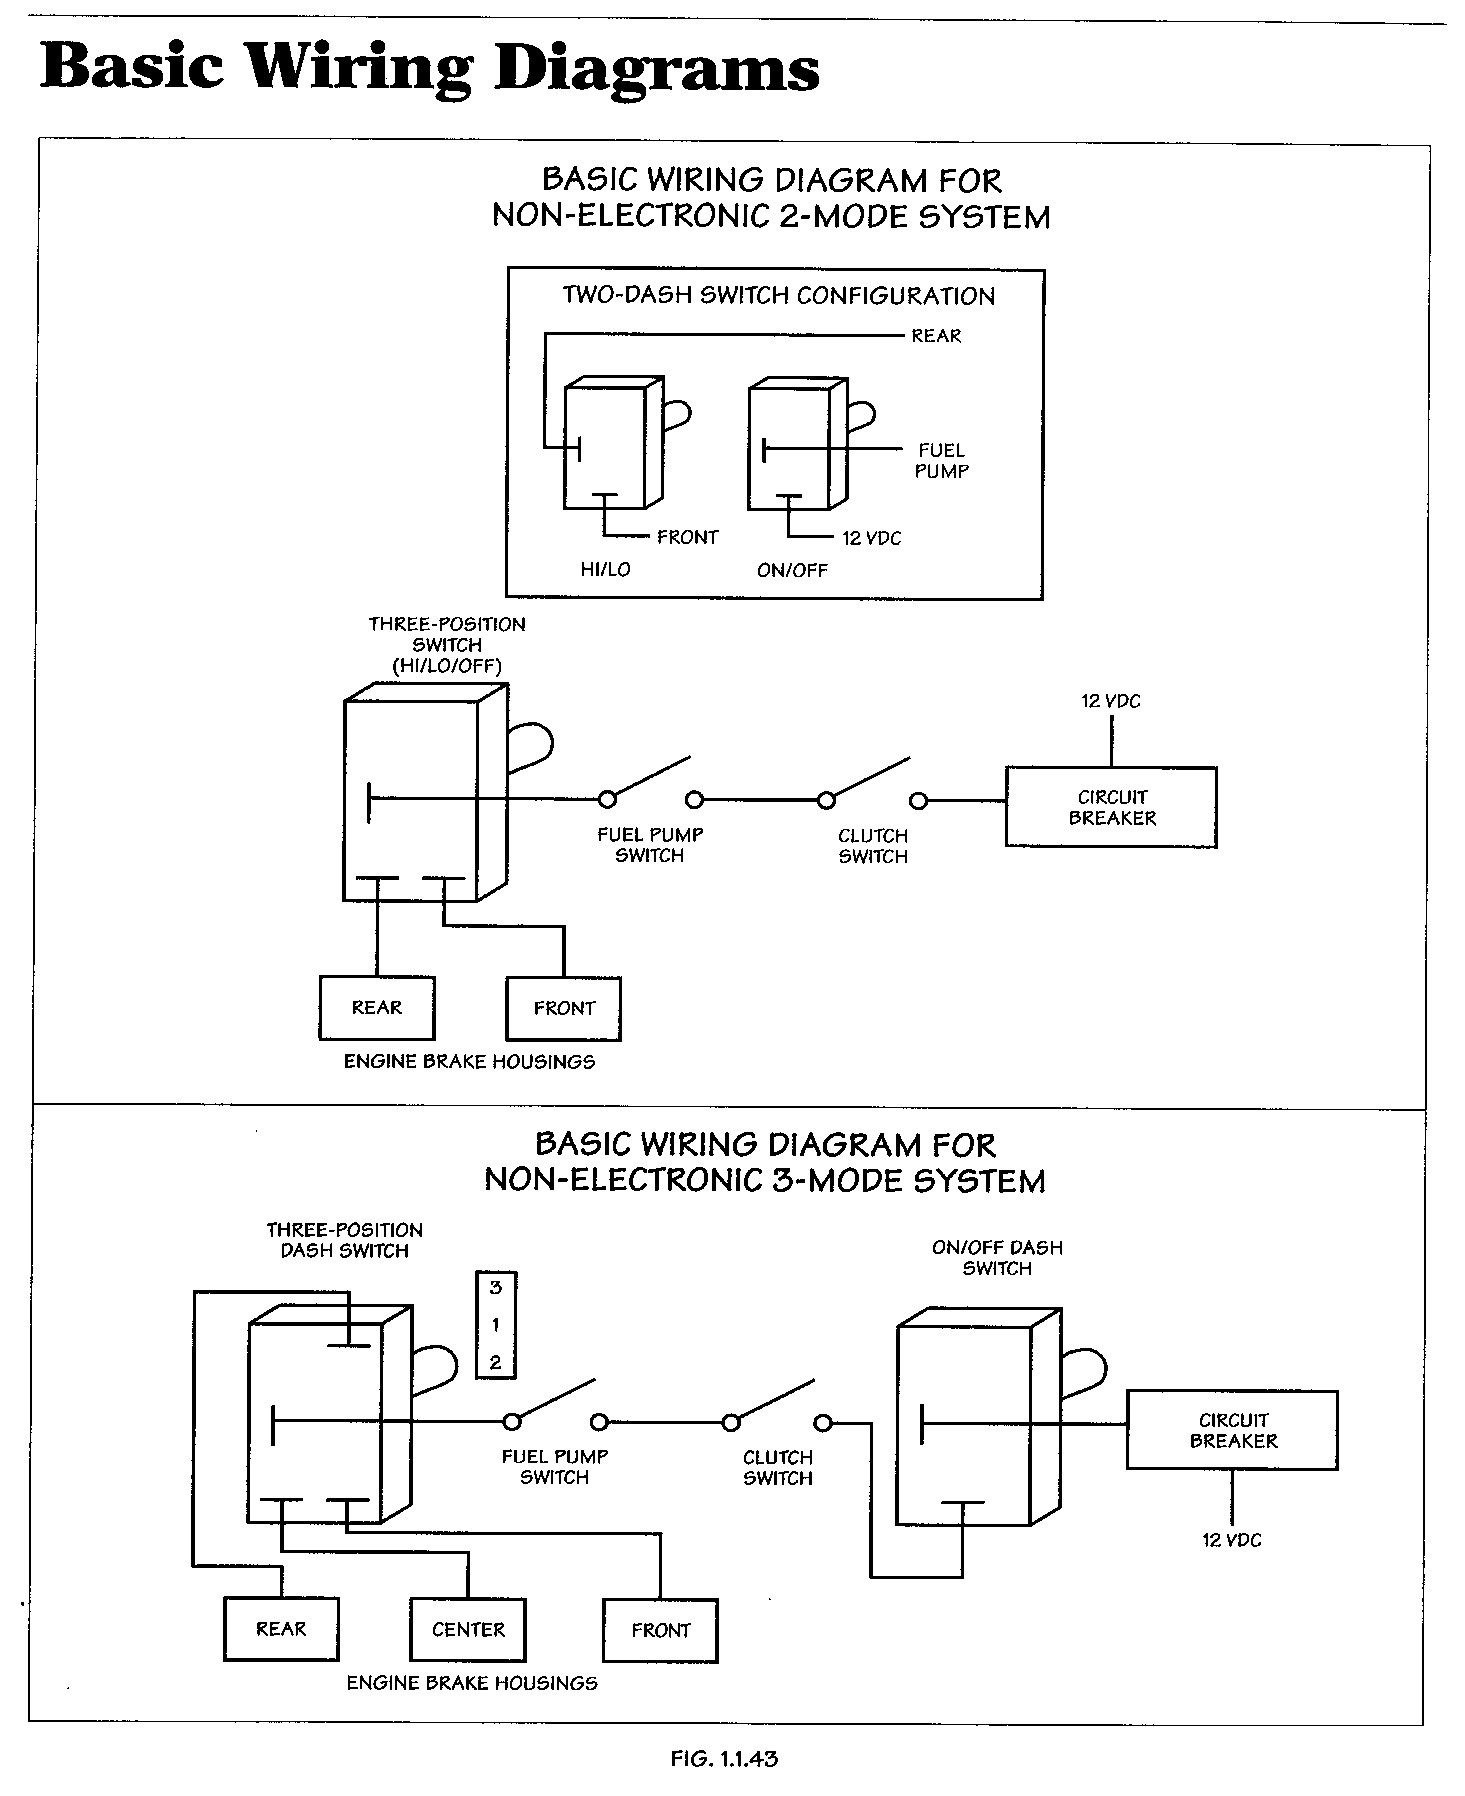 Kw T800 Brake Wiring Diagram - Wiring Diagram & Fuse Box •